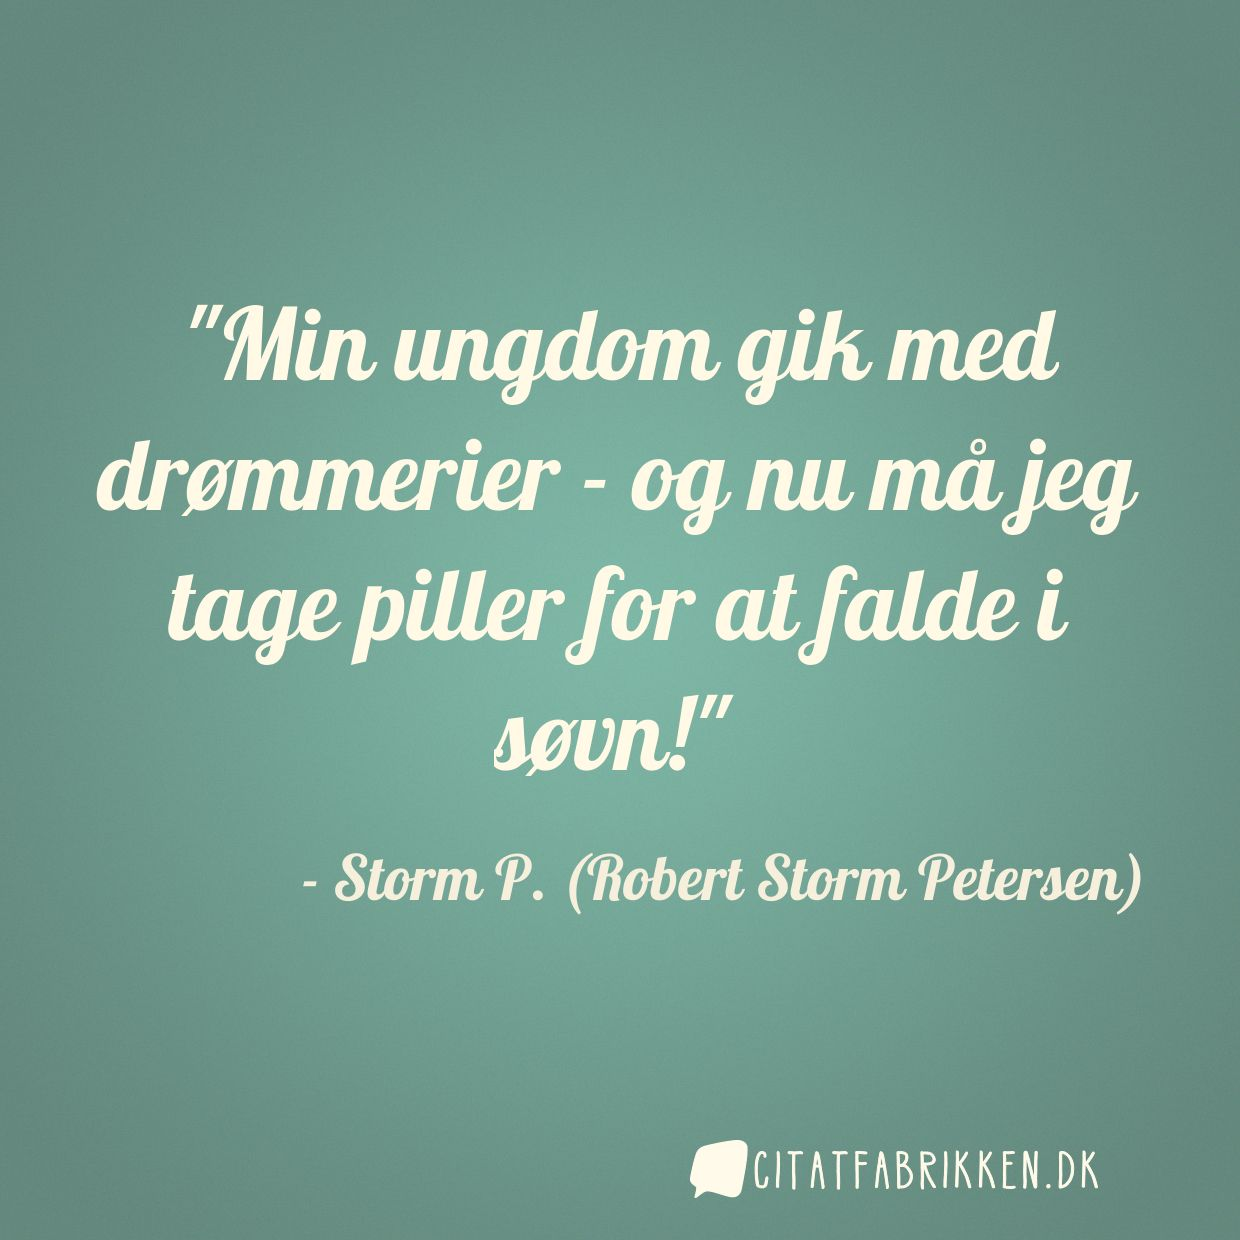 ungdoms citater Citat | Storm P. (Robert Storm Petersen) ungdoms citater